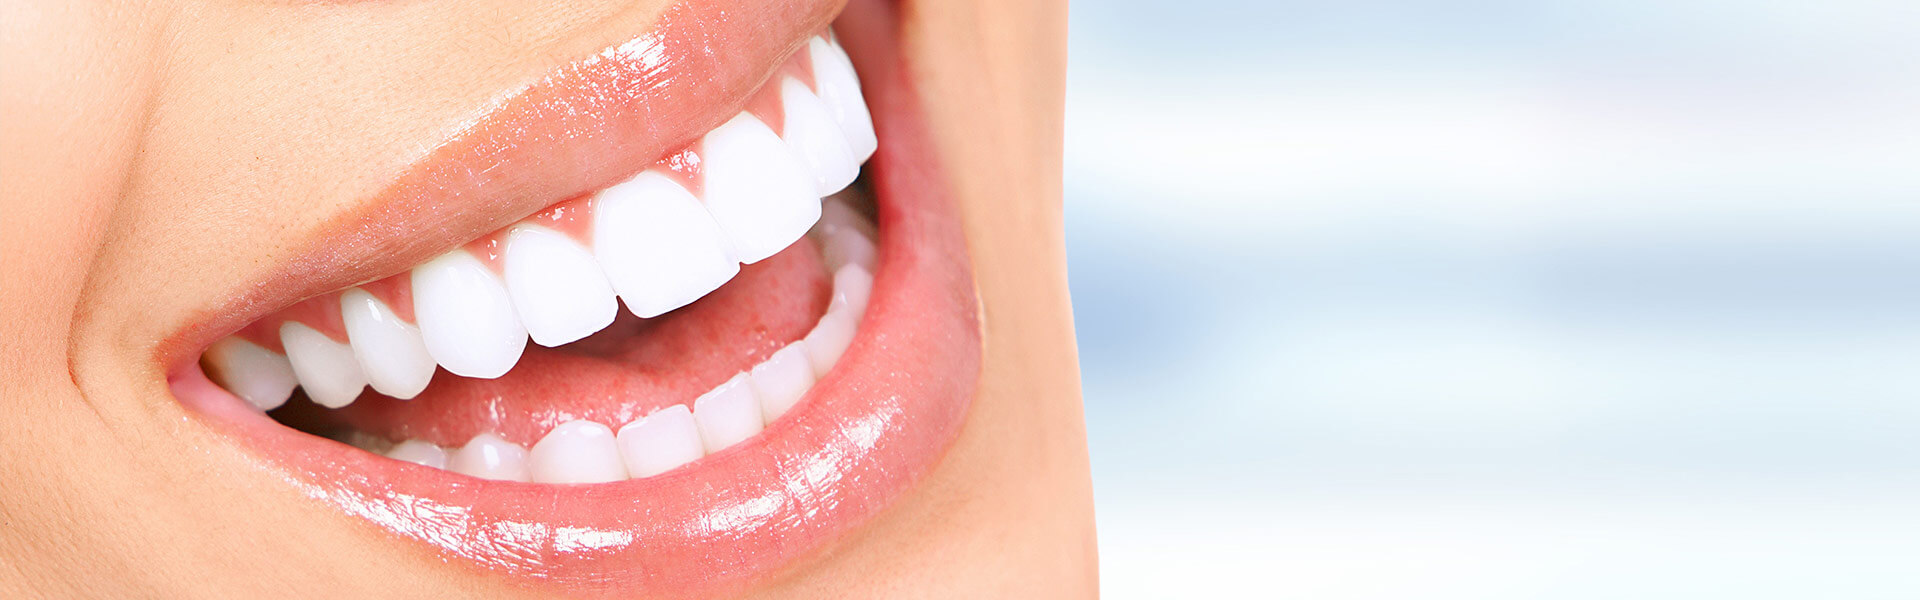 Teeth Whitening in Kingman, AZ